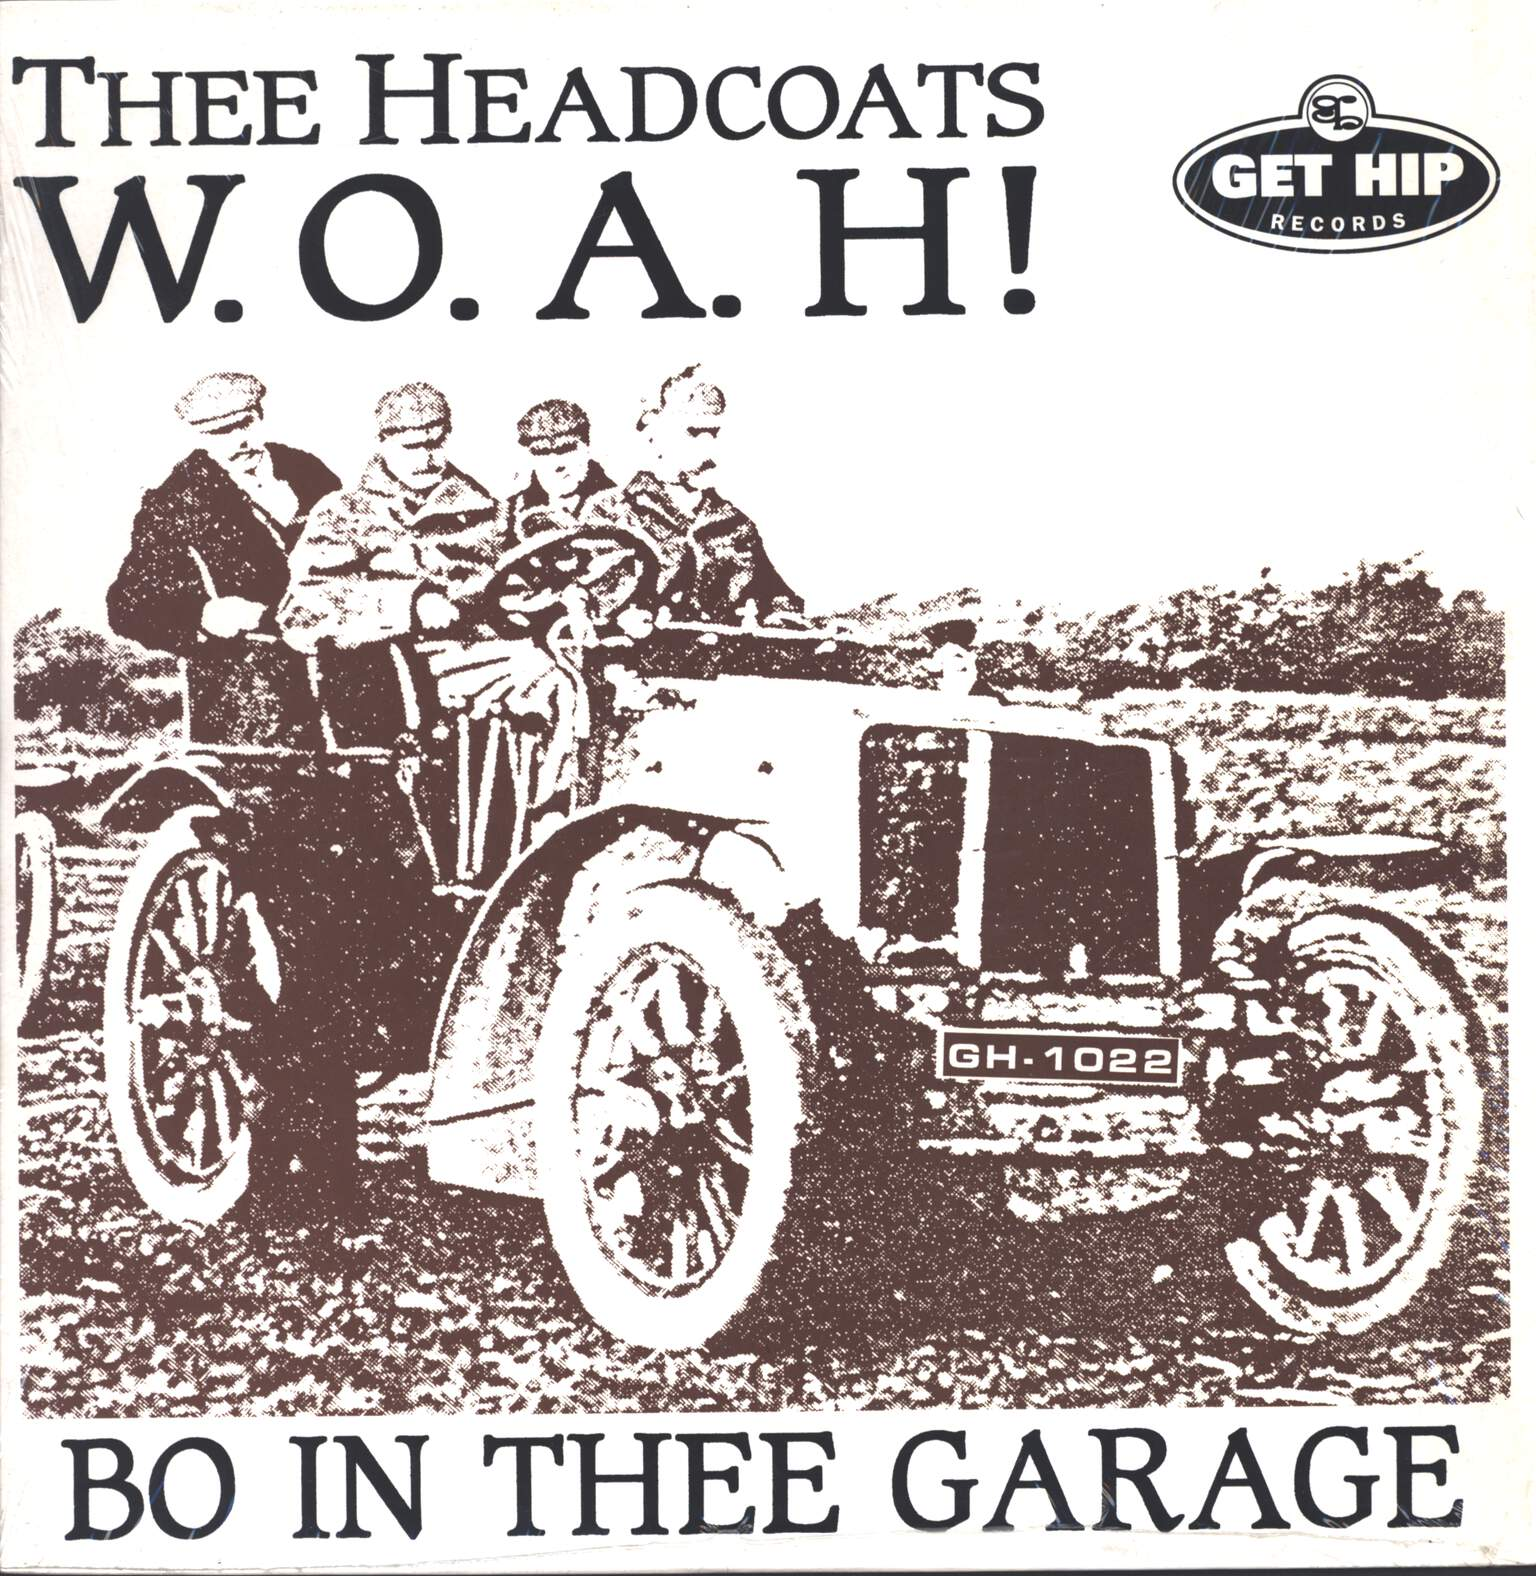 Thee Headcoats: W.O.A.H! - Bo In Thee Garage, LP (Vinyl)